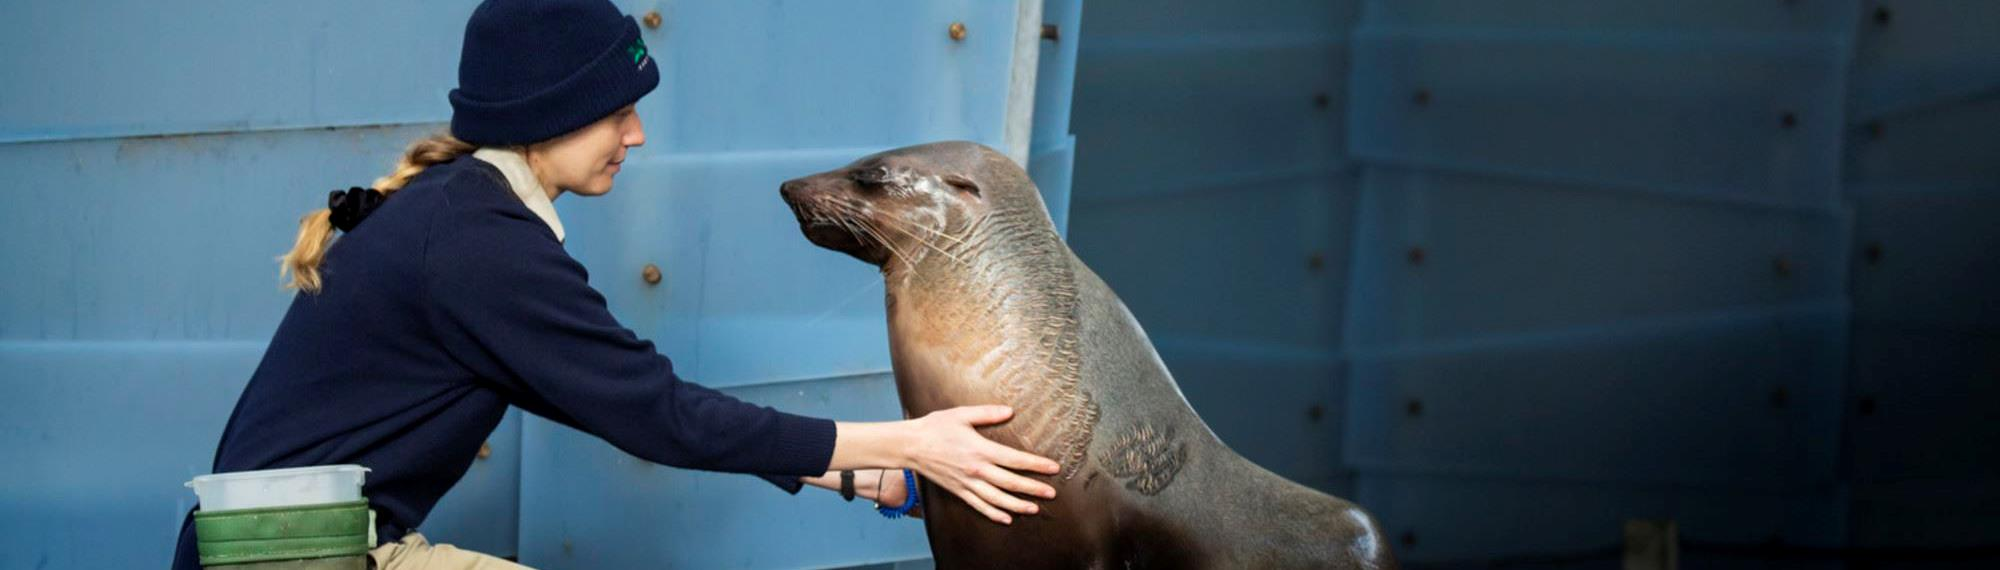 Zoo keeper kneeling next to a seal, touching the seal's body.